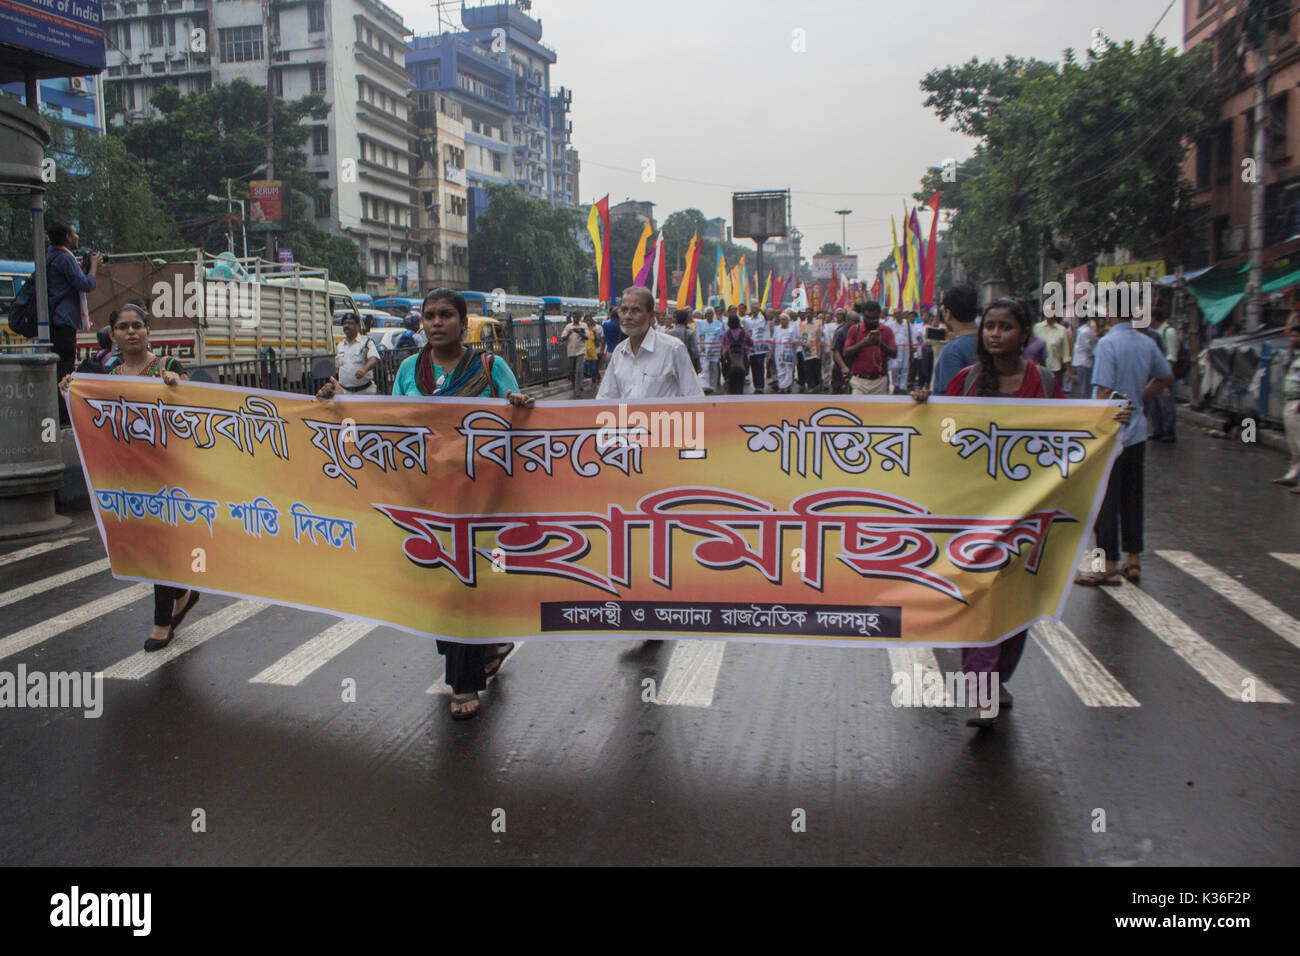 Kolkata, India. 01st Sep, 2017. kolkata,India, 01 september, 2017. Leftist party workers display a poster in an anti-imperialist rally. Credit: Sudip Maiti/Alamy Live News - Stock Image